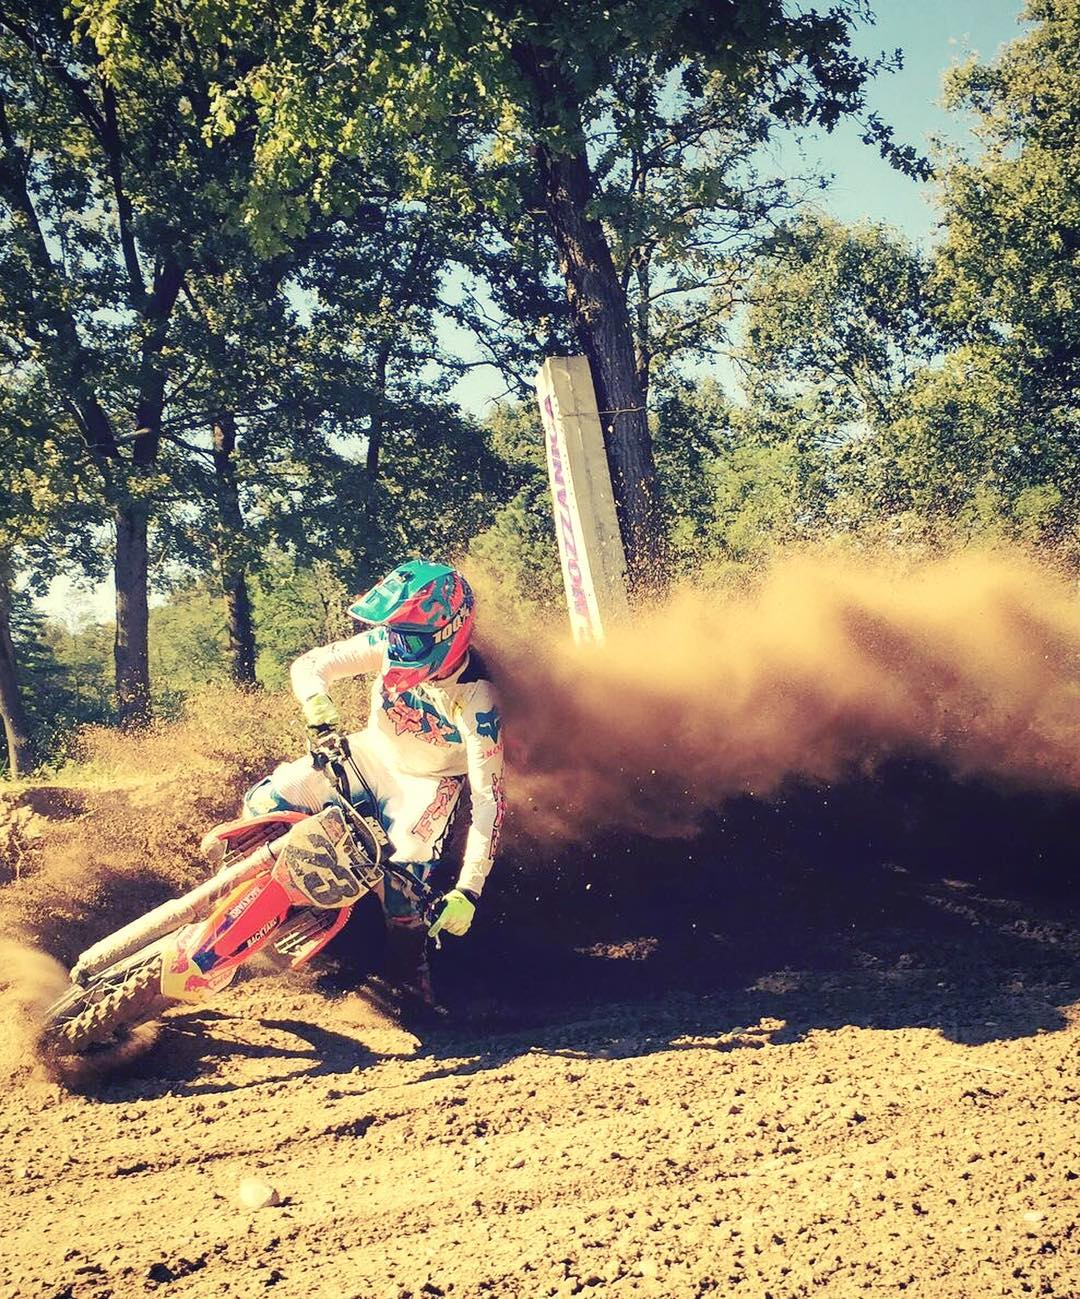 Ride or die! Killer shot from our buddy @tschugg23 #ride100percent #ktm #moto #mx @haibike_official